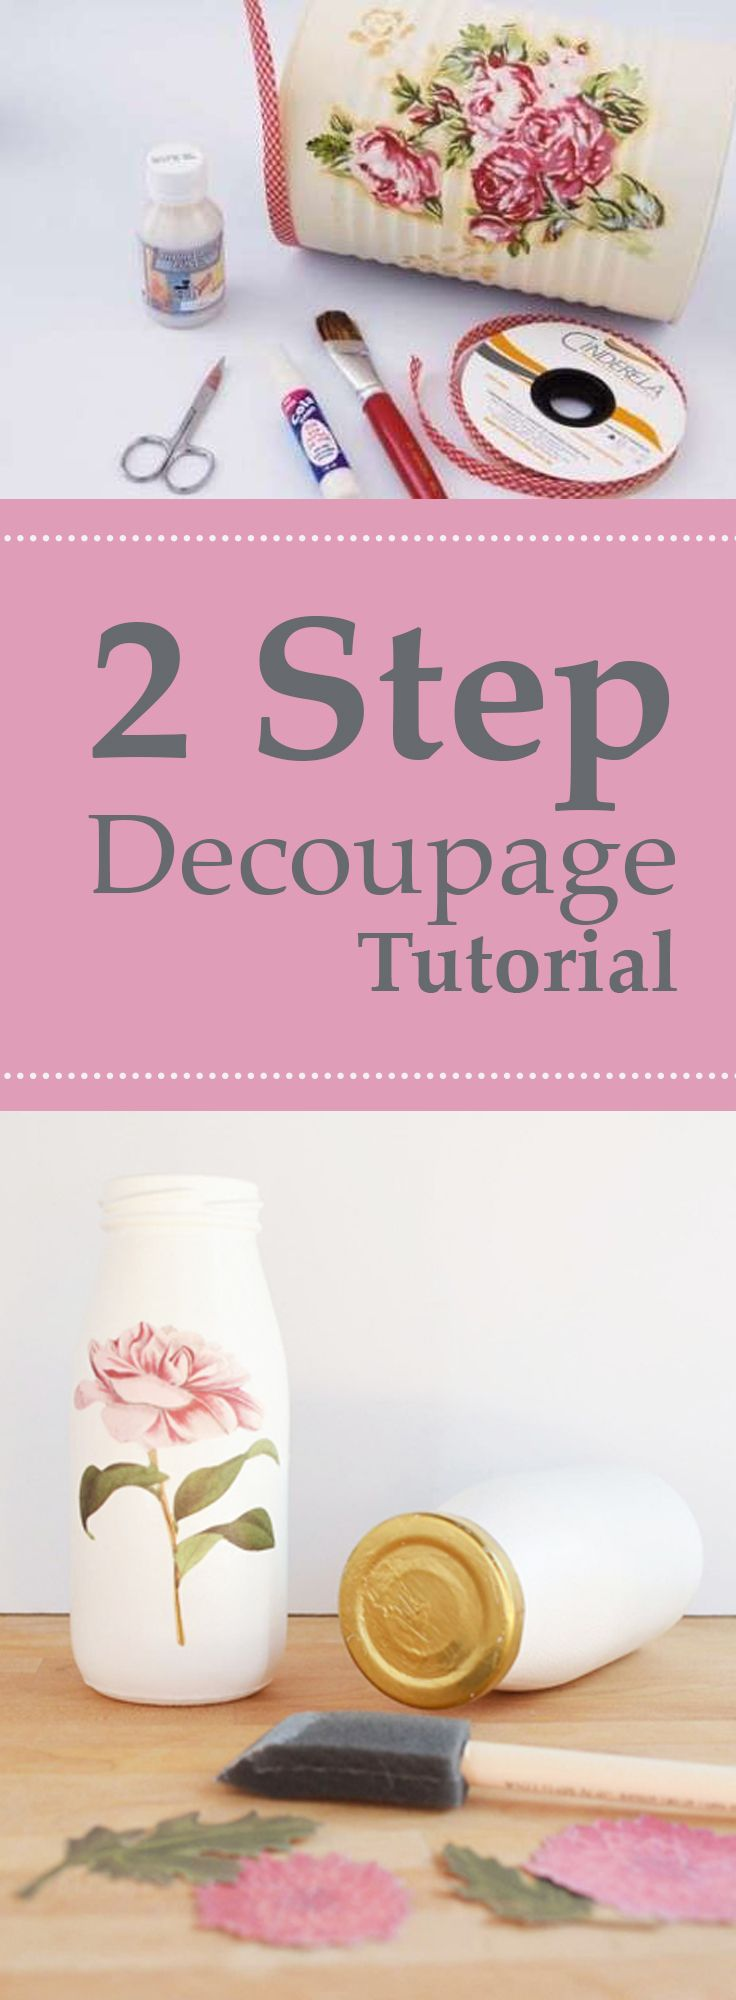 2 Step Decoupage Tutorial